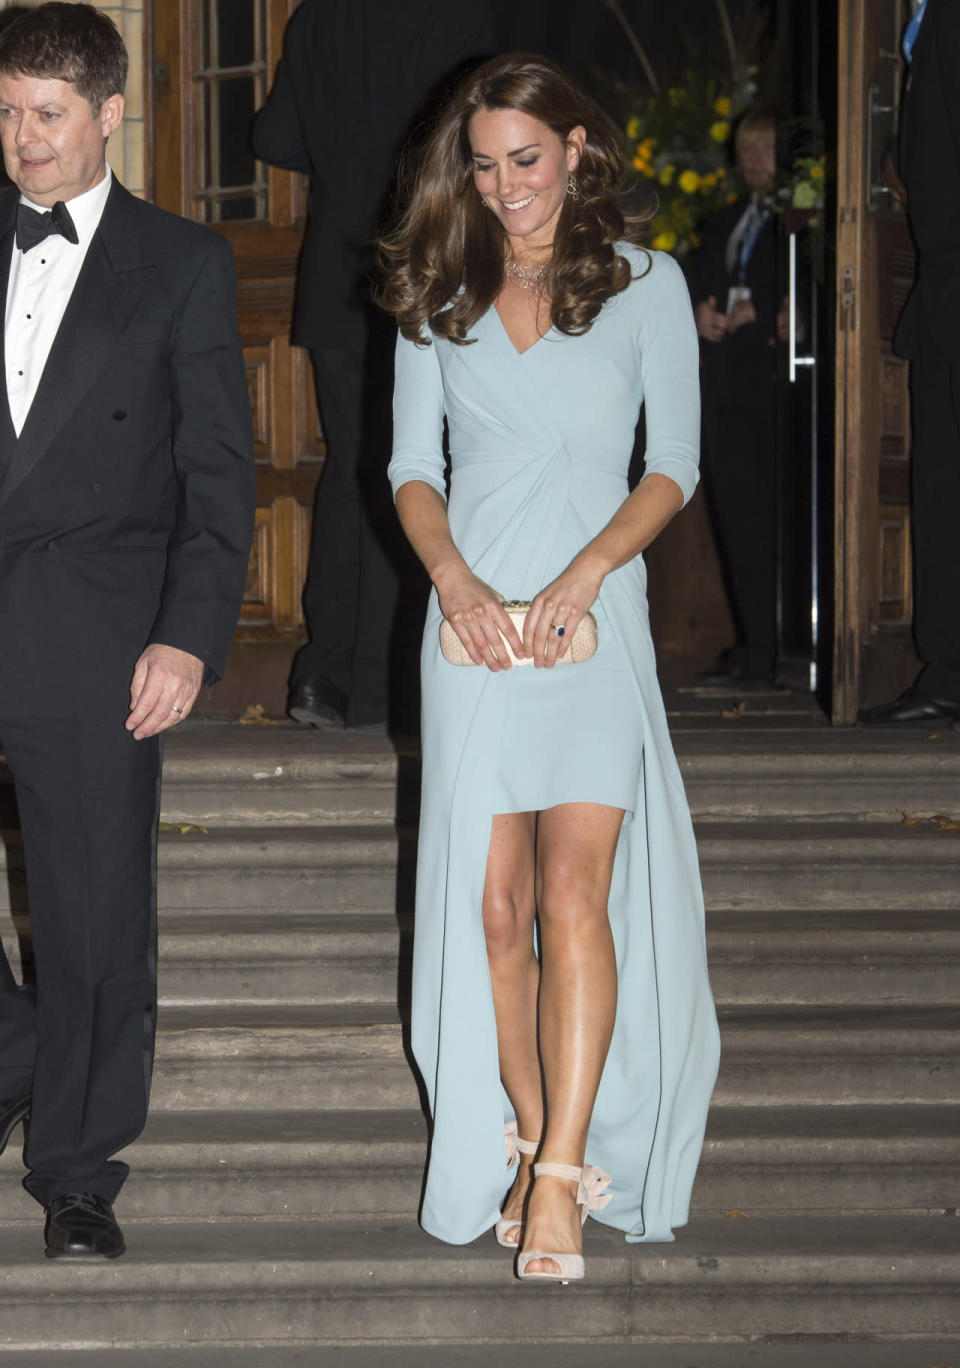 <p>Kate wowed at a London gala in a pale blue evening gown by favoured designer, Jenny Packham. A custom Alexander McQueen clutch and pink L.K. Bennett sandals topped off her gorgeous outfit. </p><p><i>[Photo: PA]</i></p>